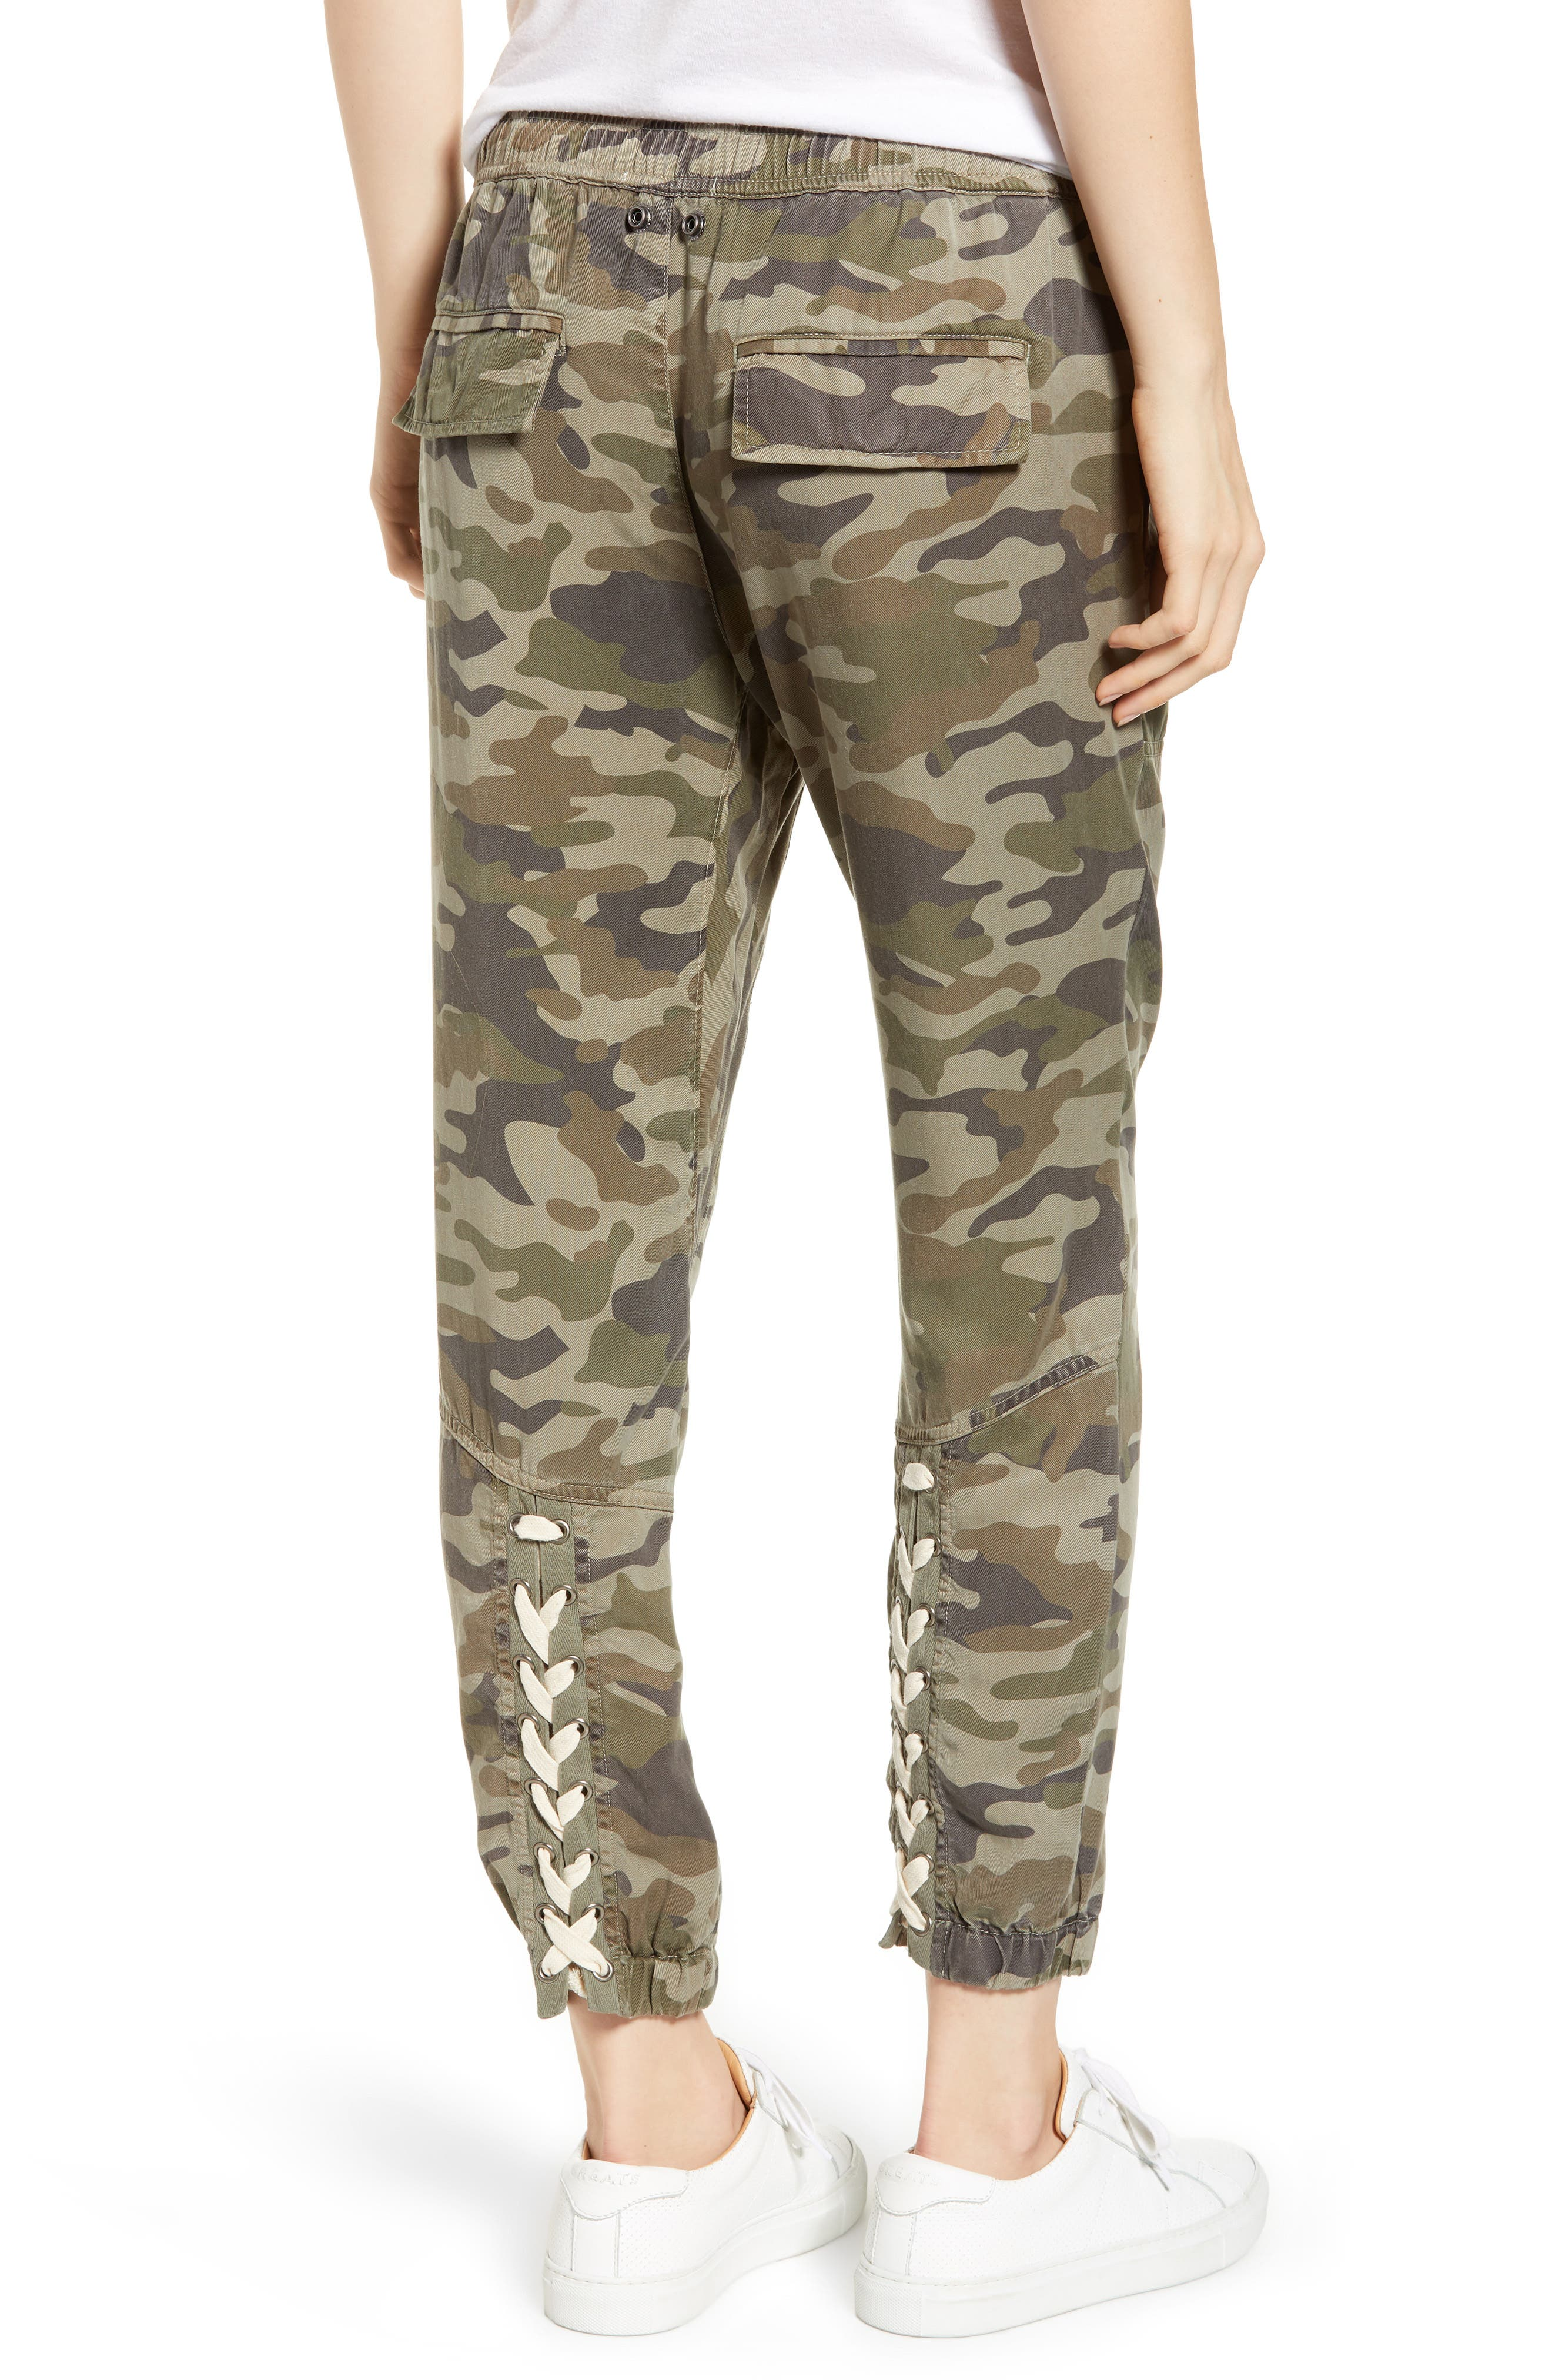 Clay Camo Lace-Up Pants,                             Alternate thumbnail 2, color,                             CLAY CAMO